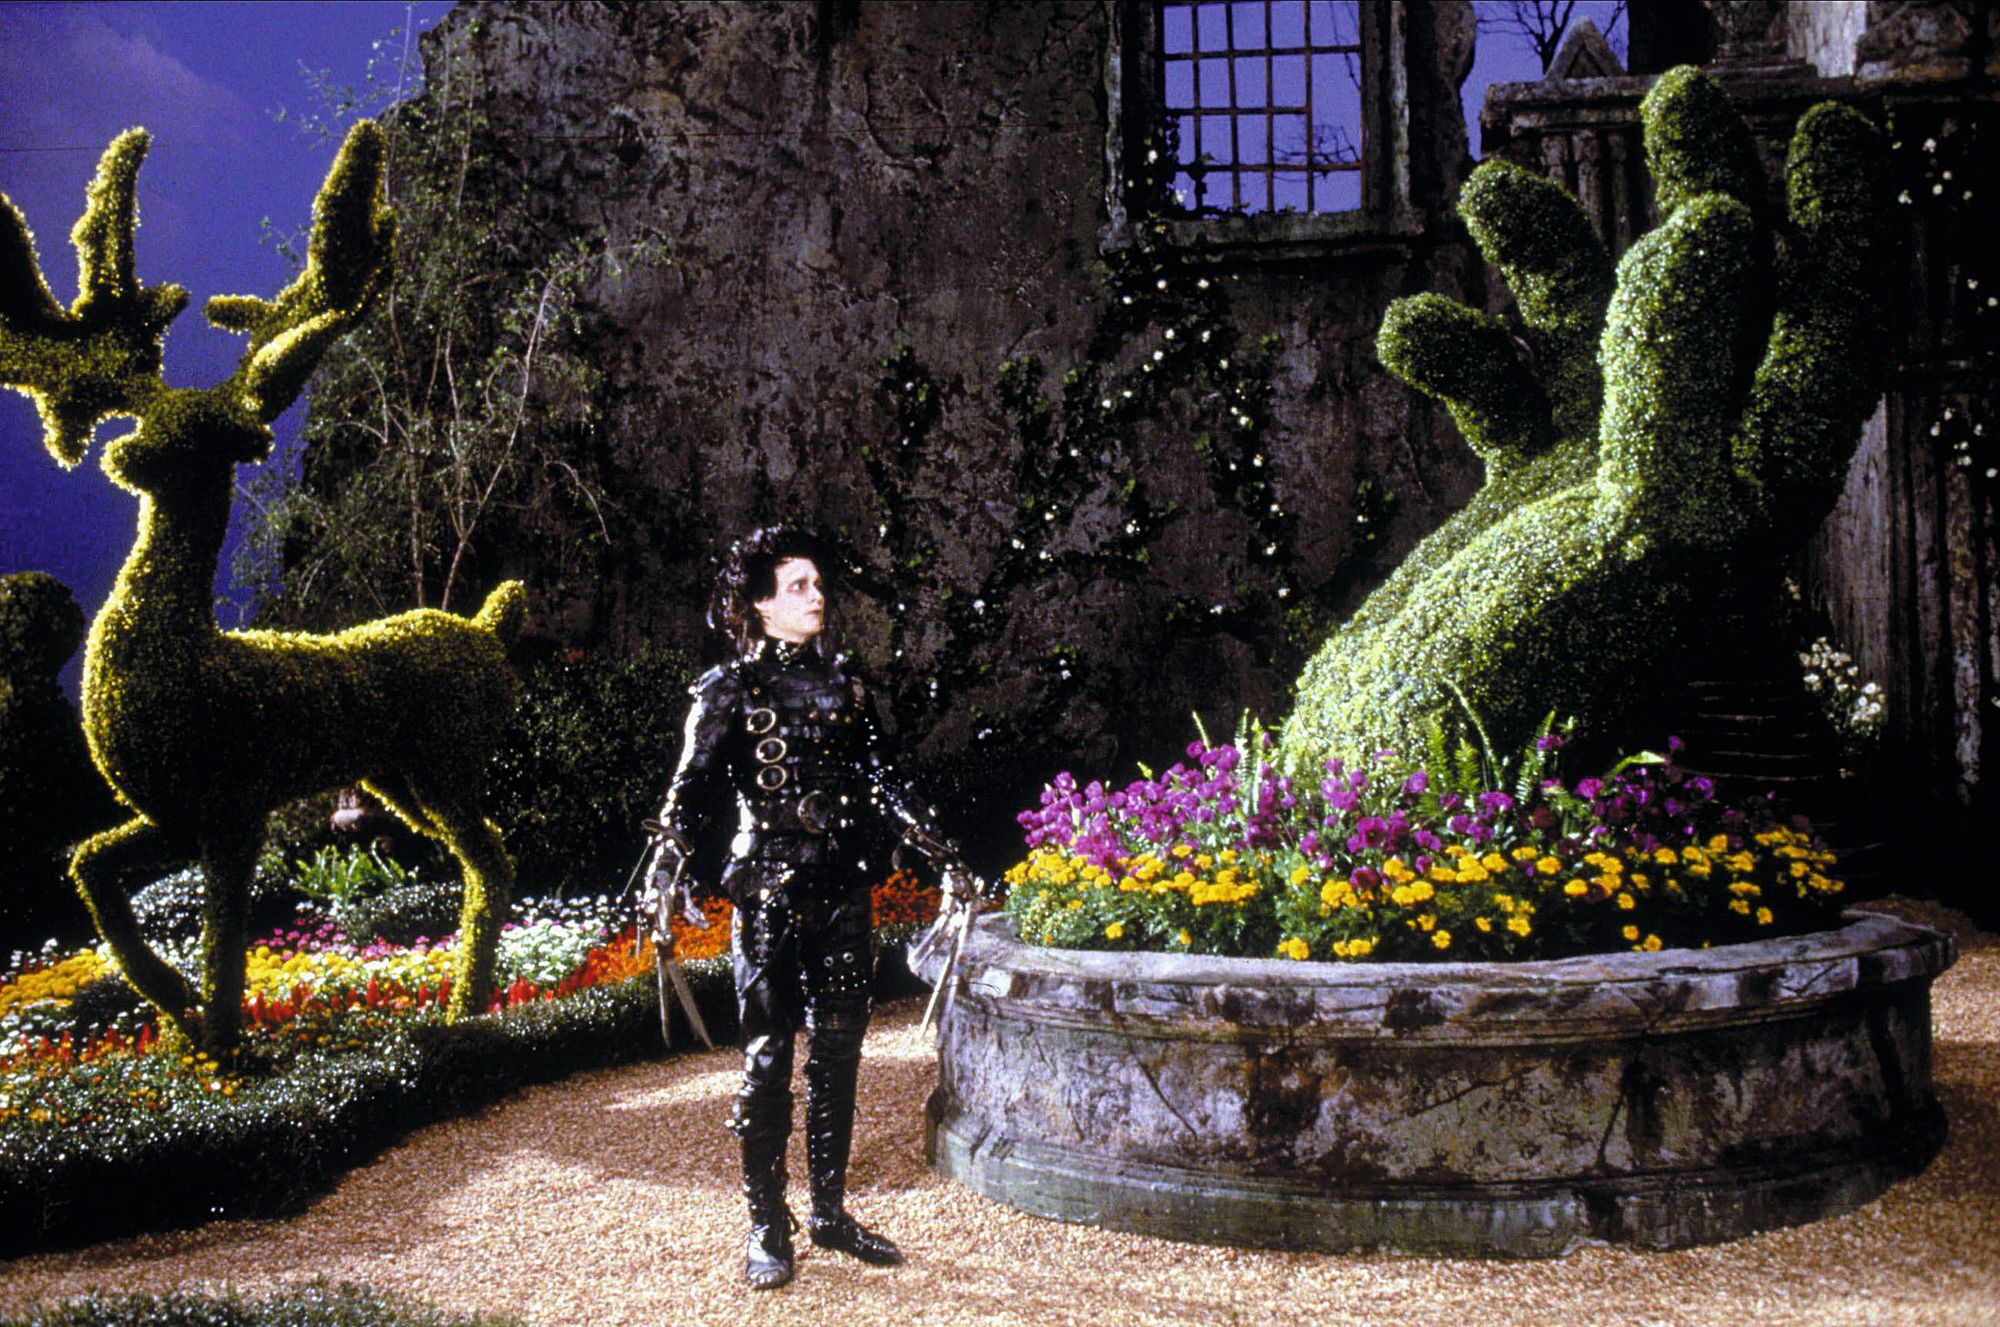 Scissorhands still